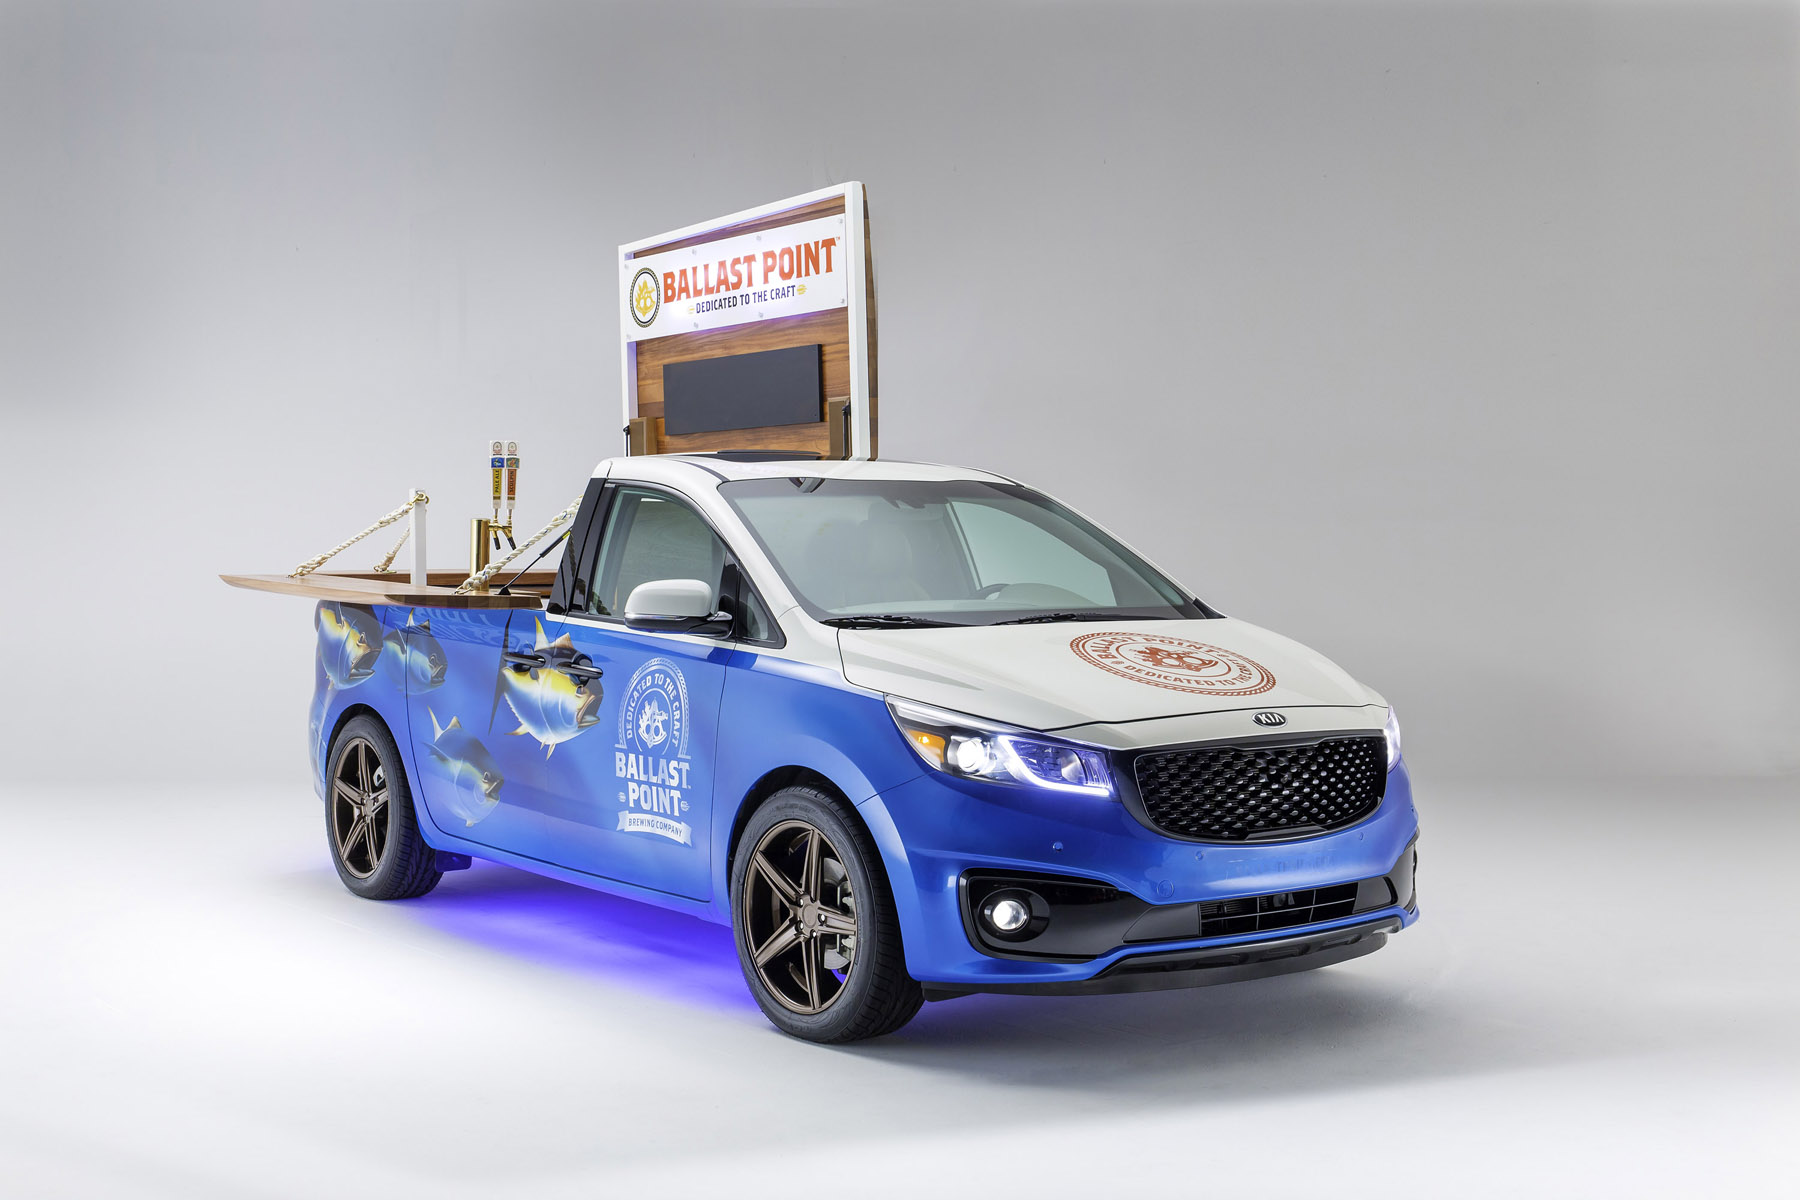 2015 Ballast Point Kia Sedona SXL